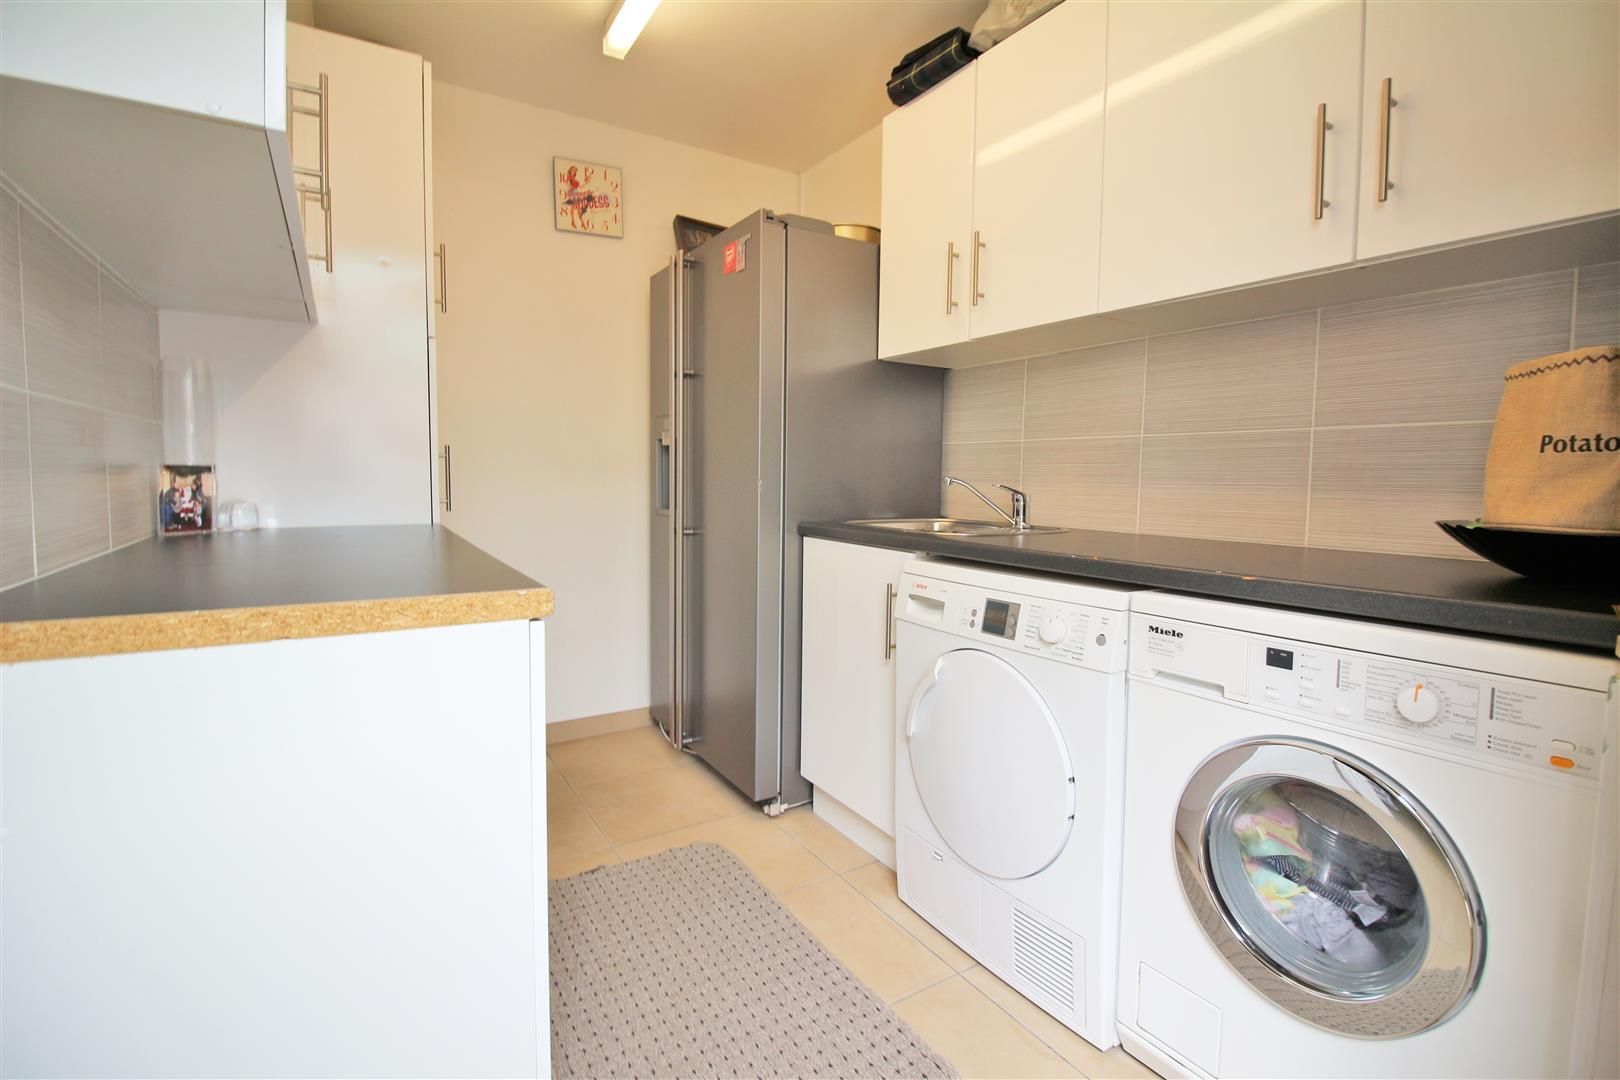 4 bed to rent in Leavesden - (Property Image 20)